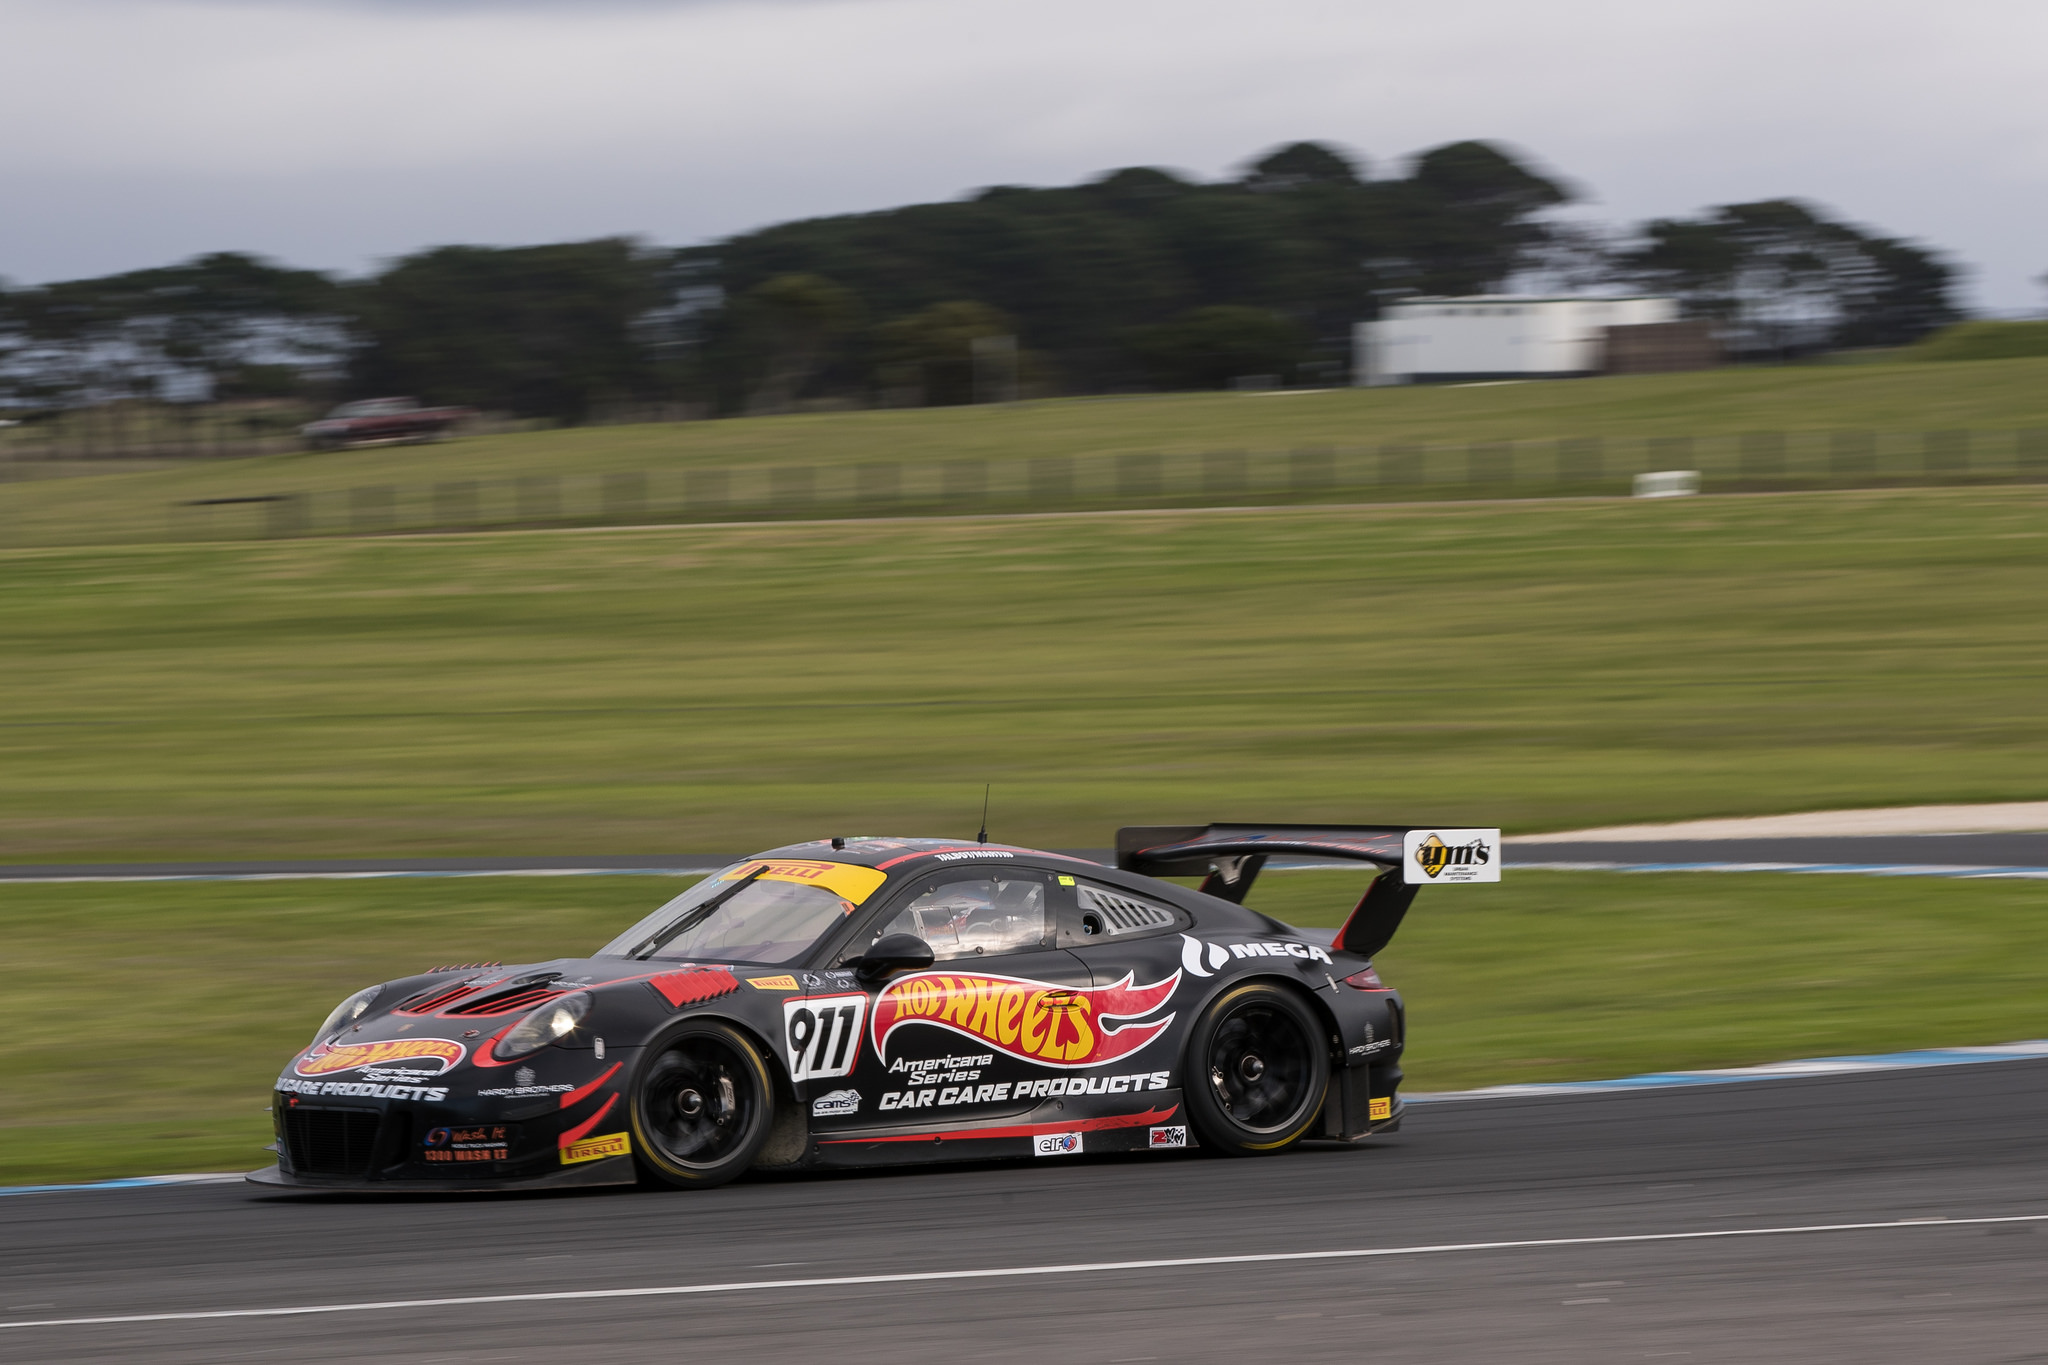 Phillip Island proves elusive again for dominant Talbot and Martin